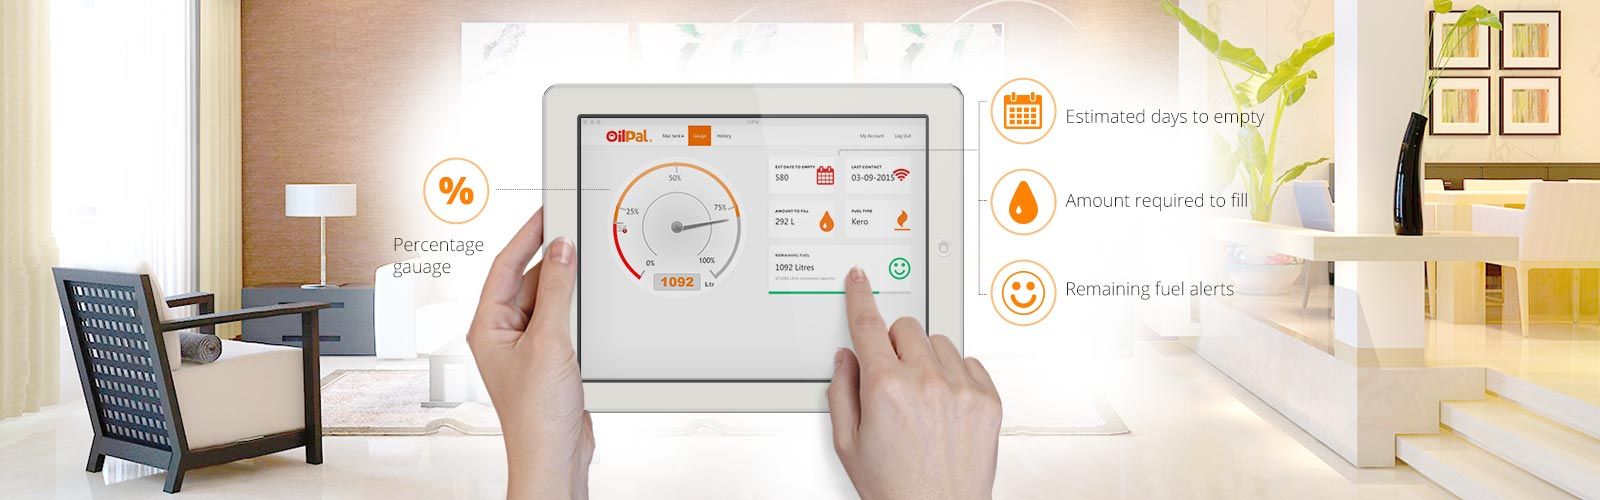 Oilpal-Mobile-App-Fuel-and-home-heating-alerts